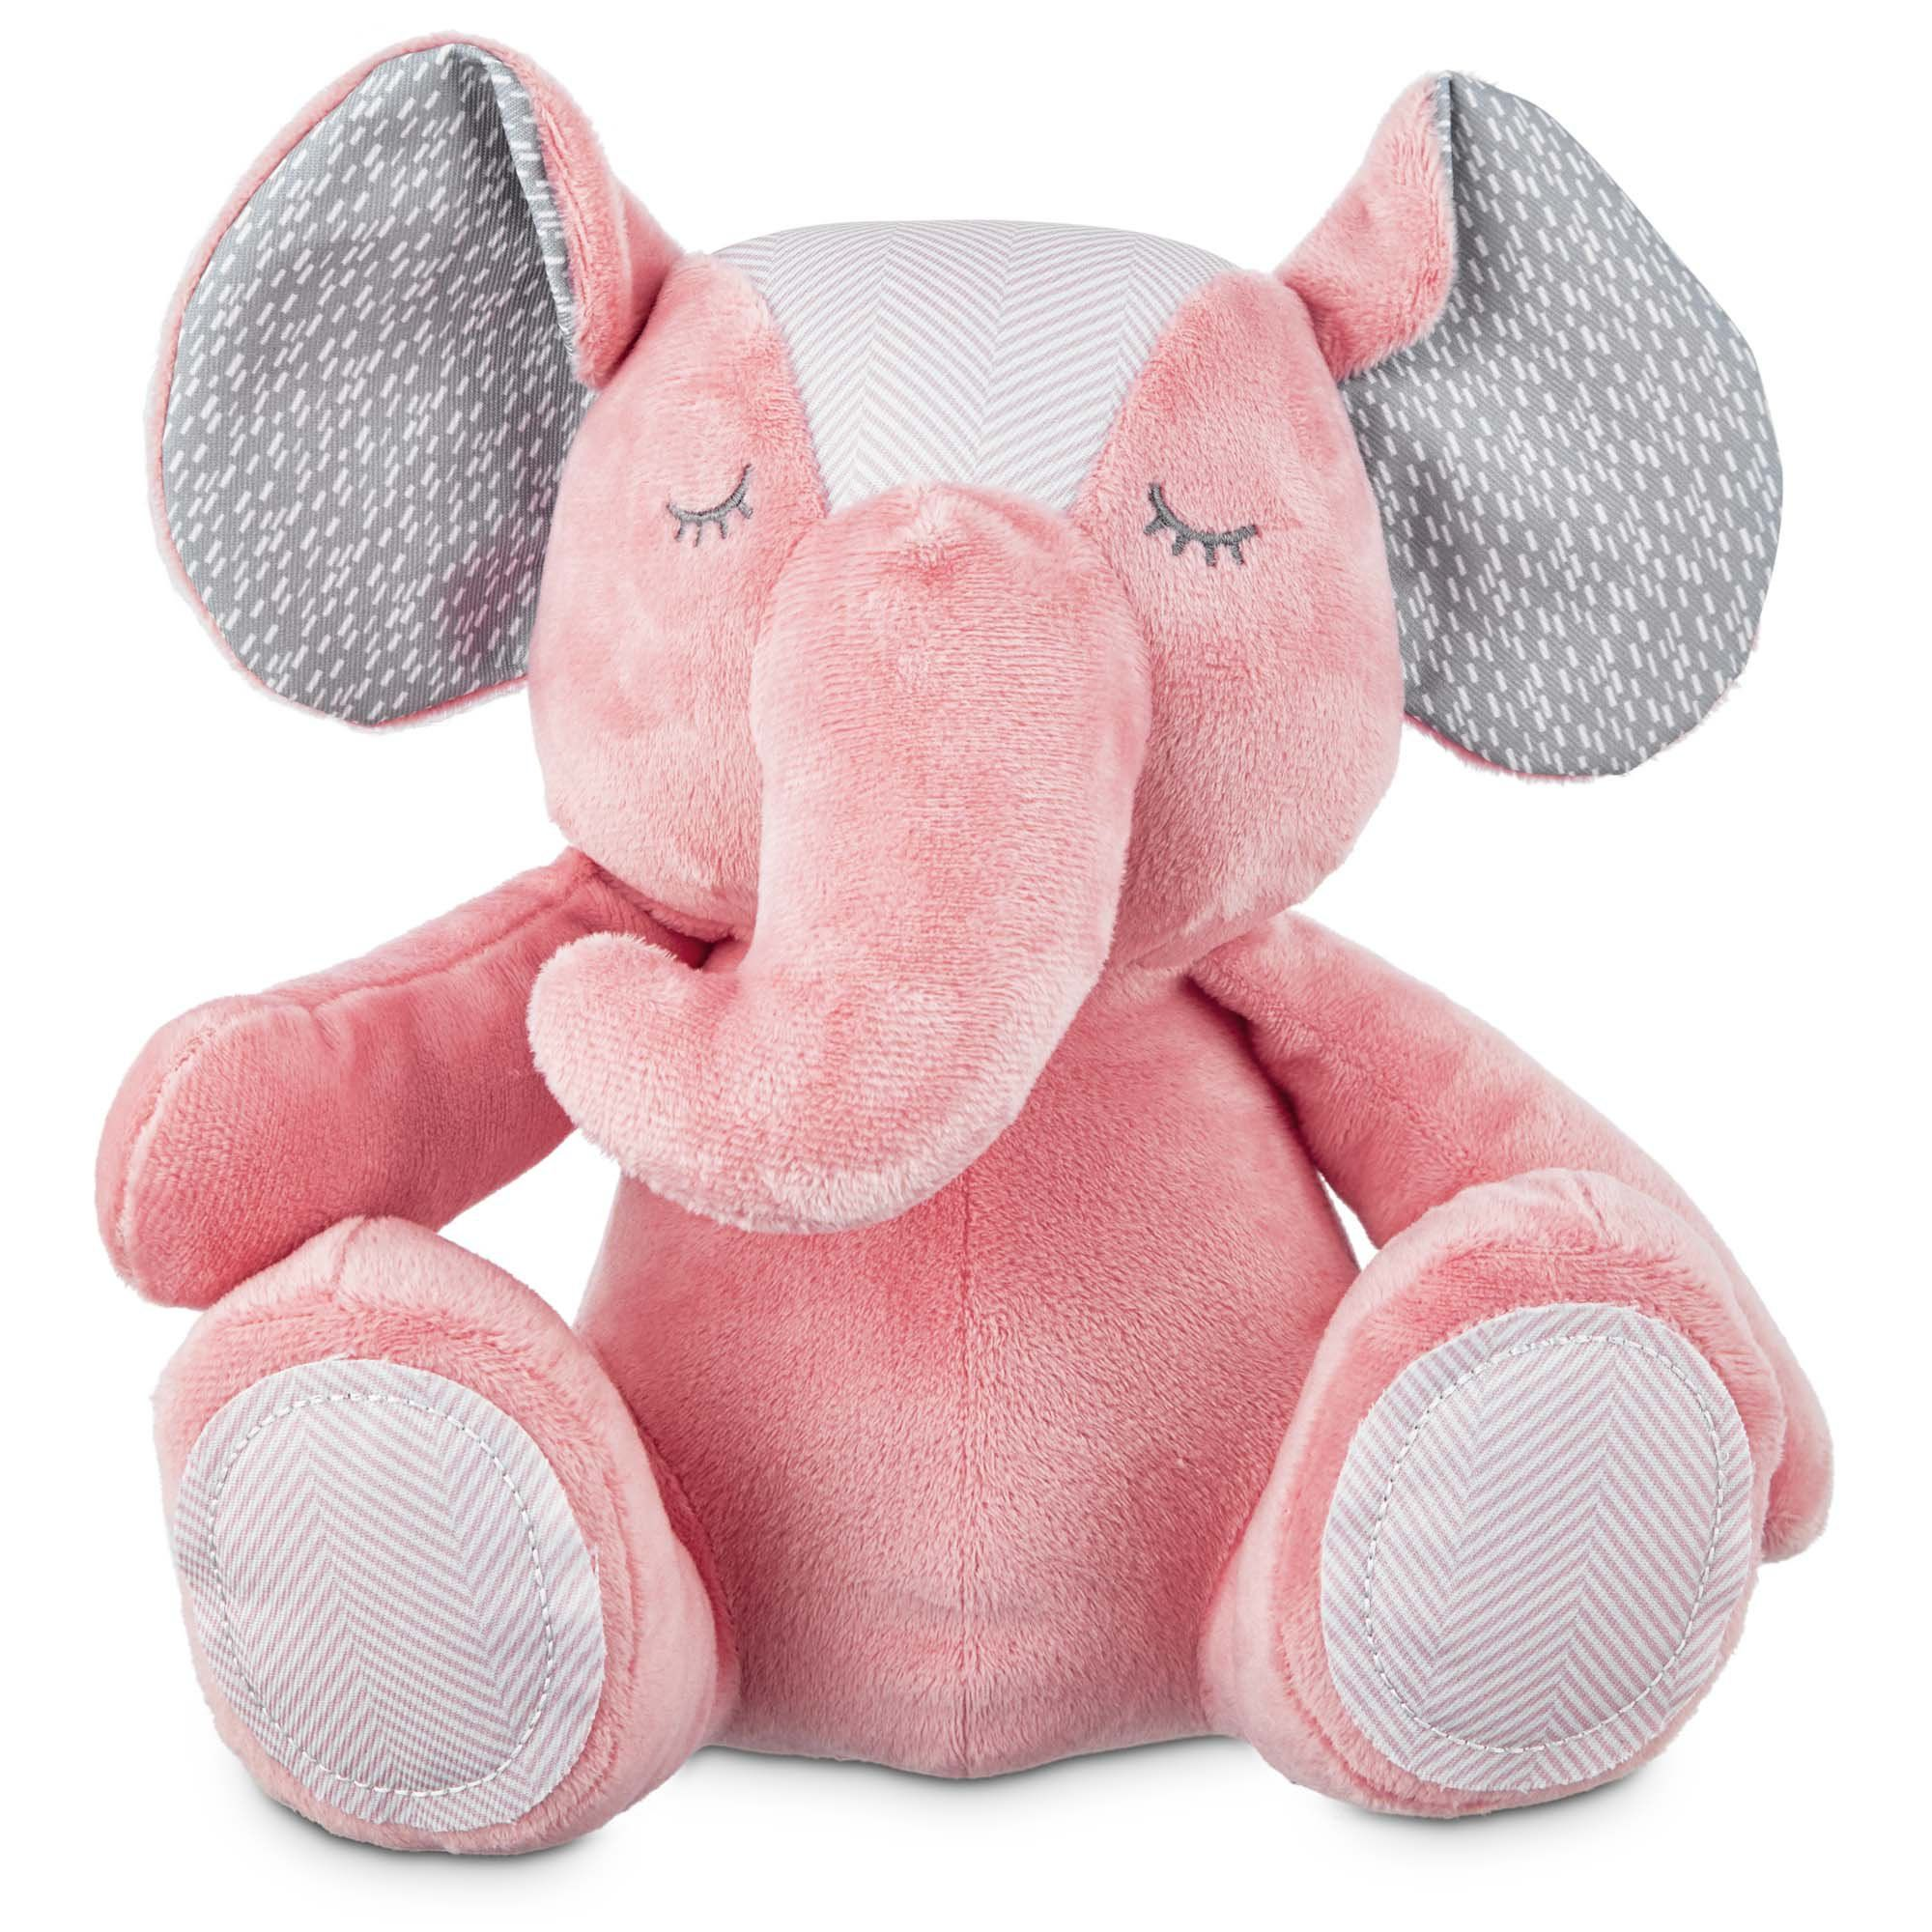 Nurture Your Puppy S Natural Play Patterns With The Leaps Bounds Elephant Puppy Plush Toy Squeakers Capture Their Curi Toy Puppies Puppy Plush Toys Dog Toys